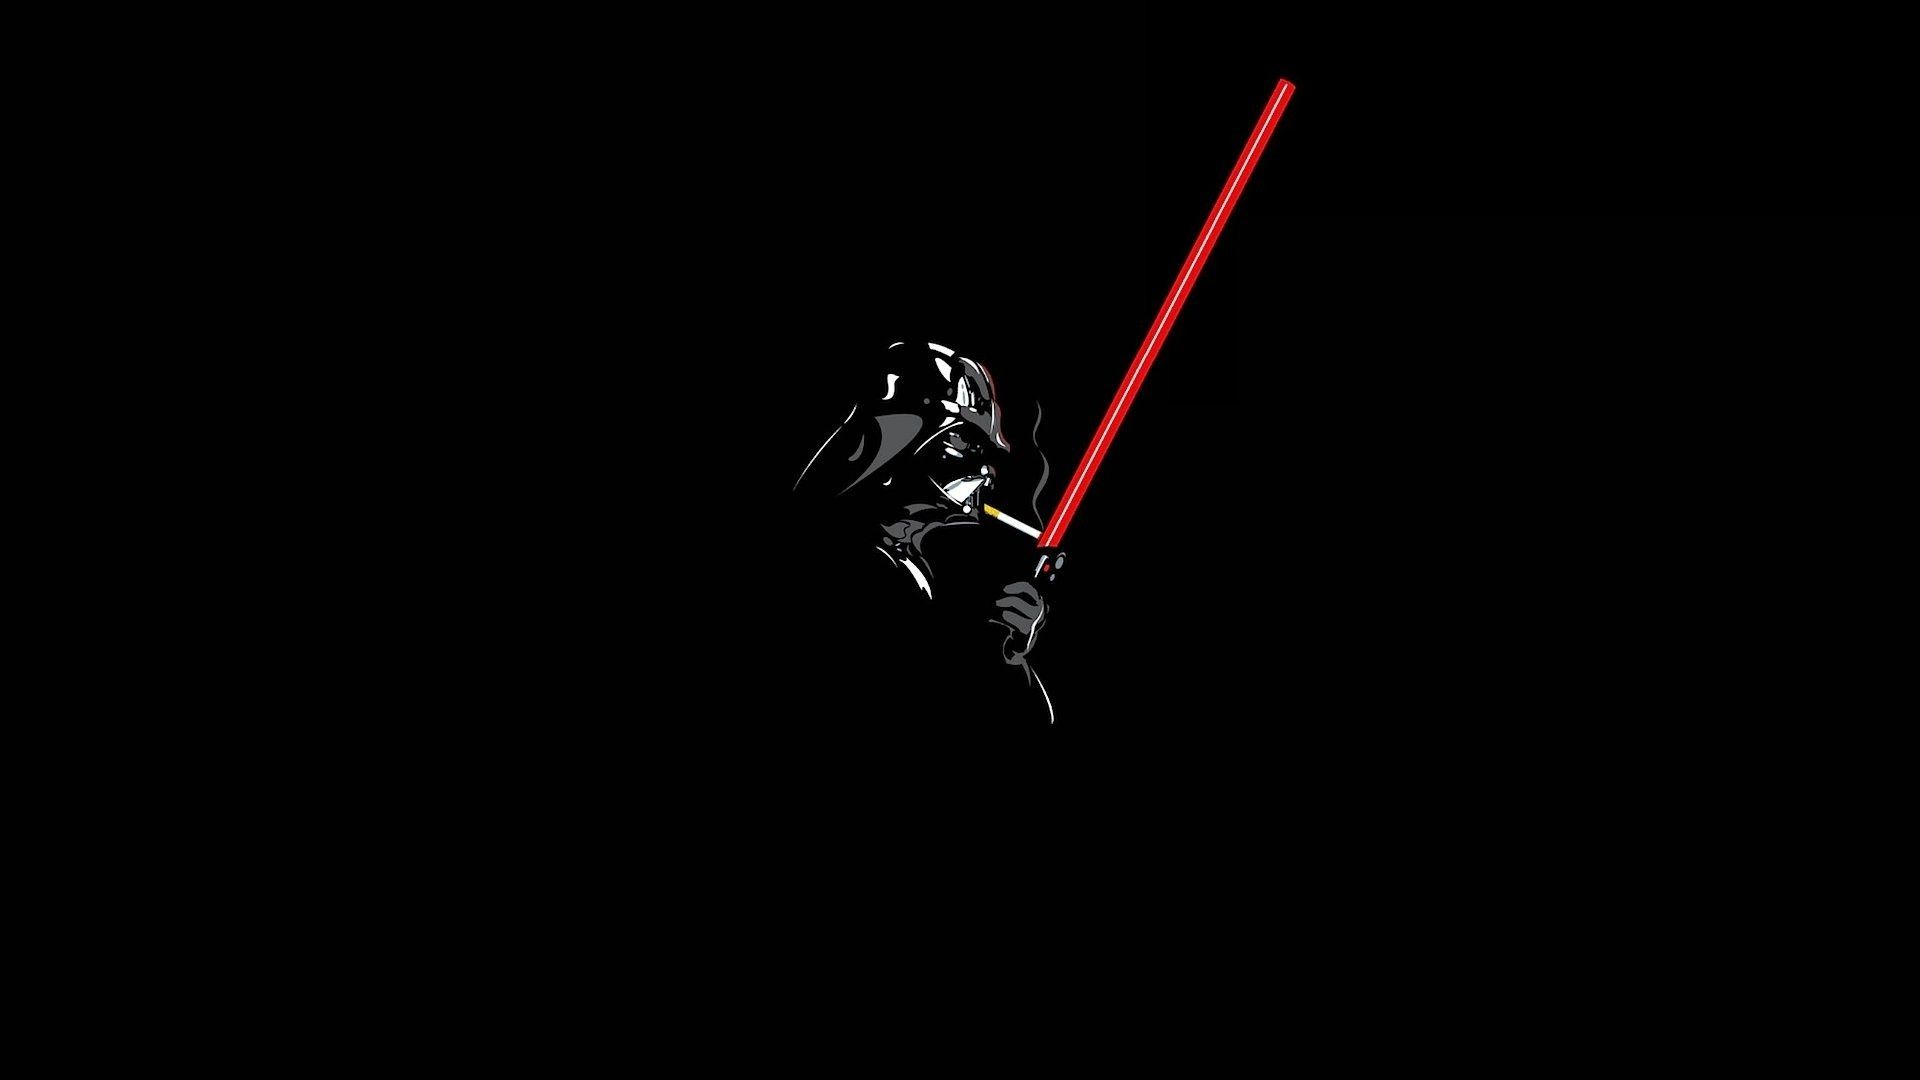 darth vader screensaver